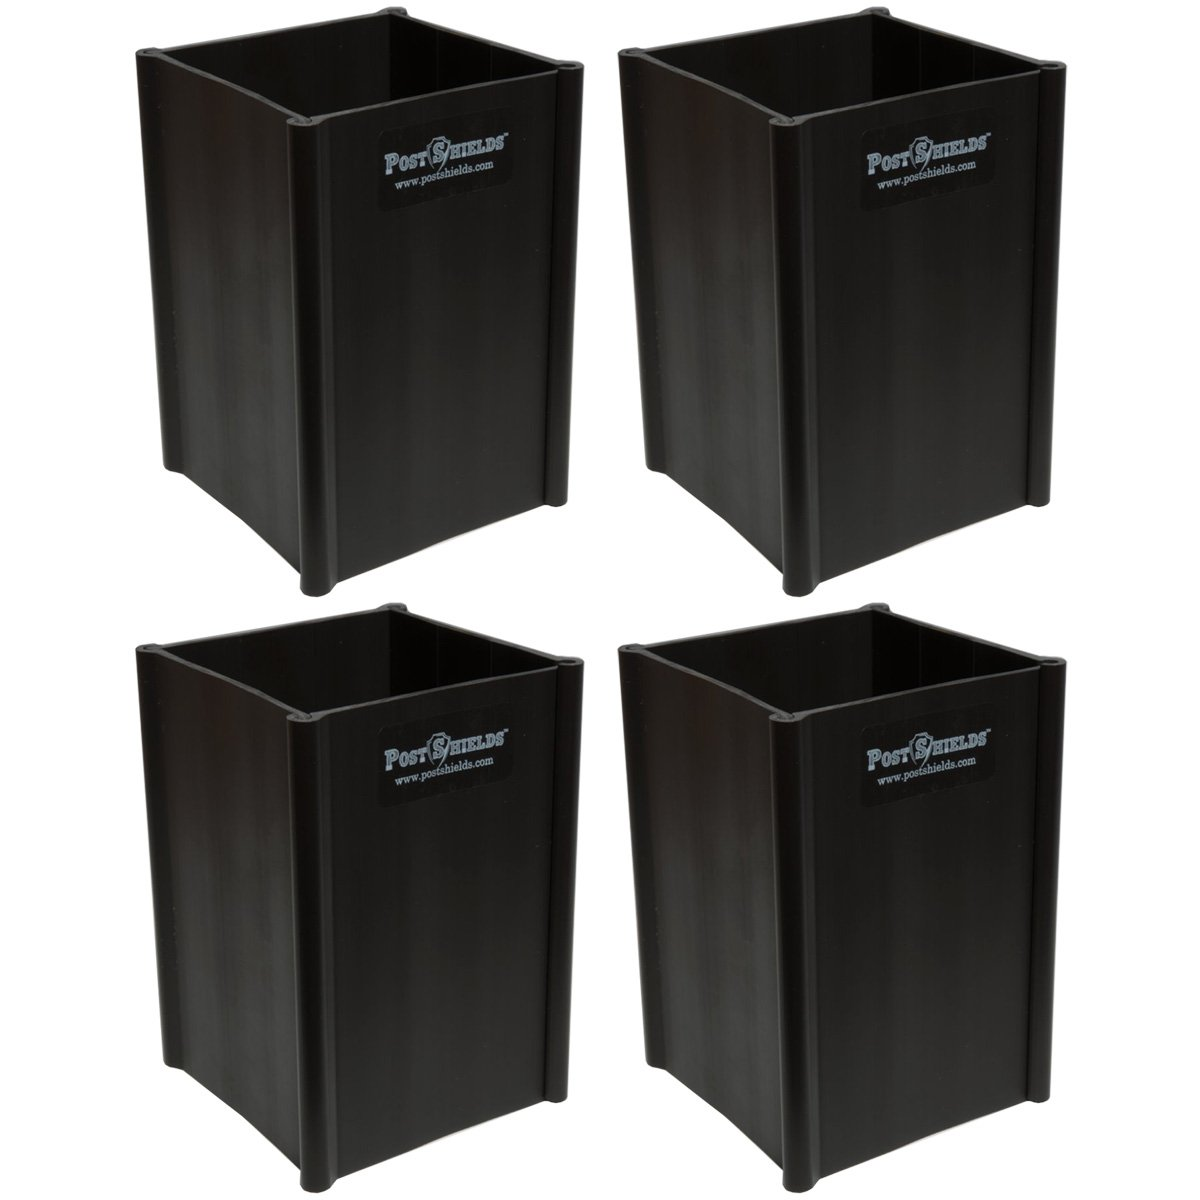 Pack of 4 - Post Shields 4'' x 4'' x 6'' (FITS 3.5'' x 3.5'' POSTS) - Bronze - Fence Post Protection from Grass Trimmers